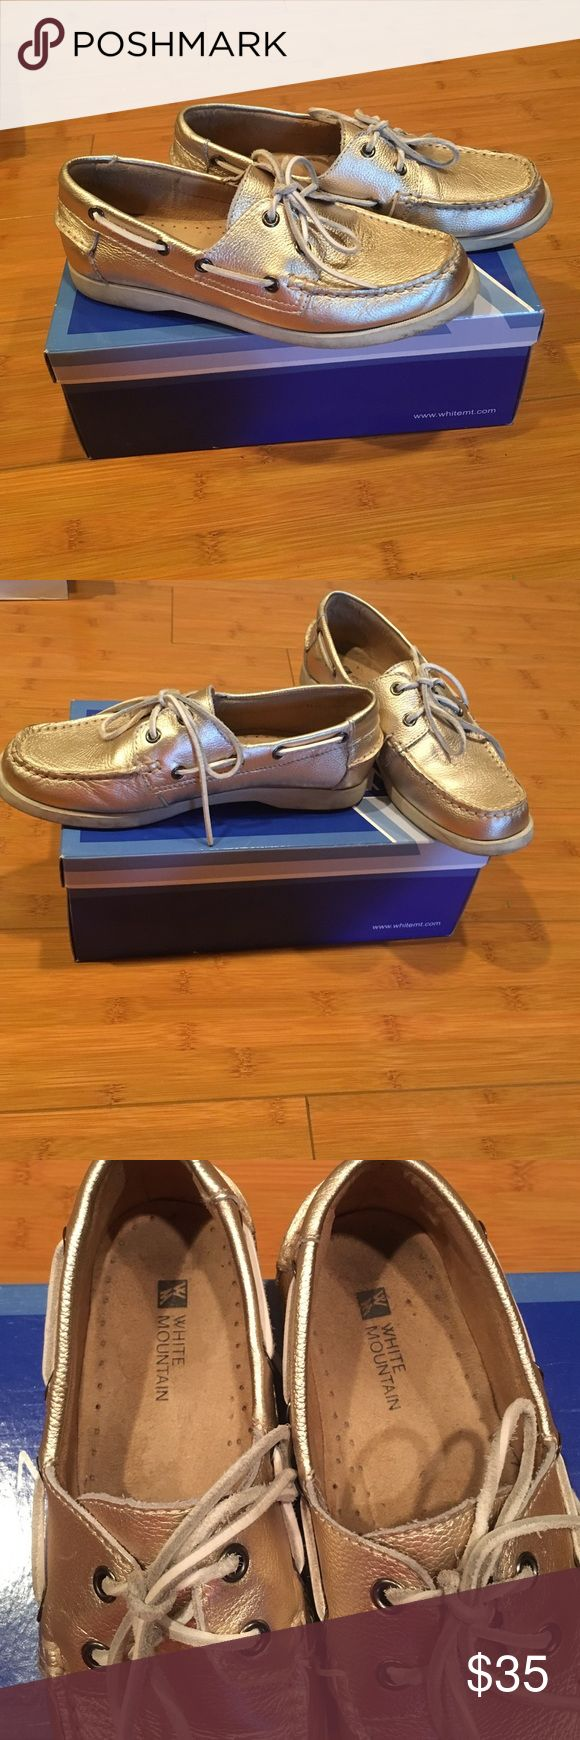 White mountain metallic boat shoes These shoes are in good condition White Mountaineering Shoes Flats & Loafers